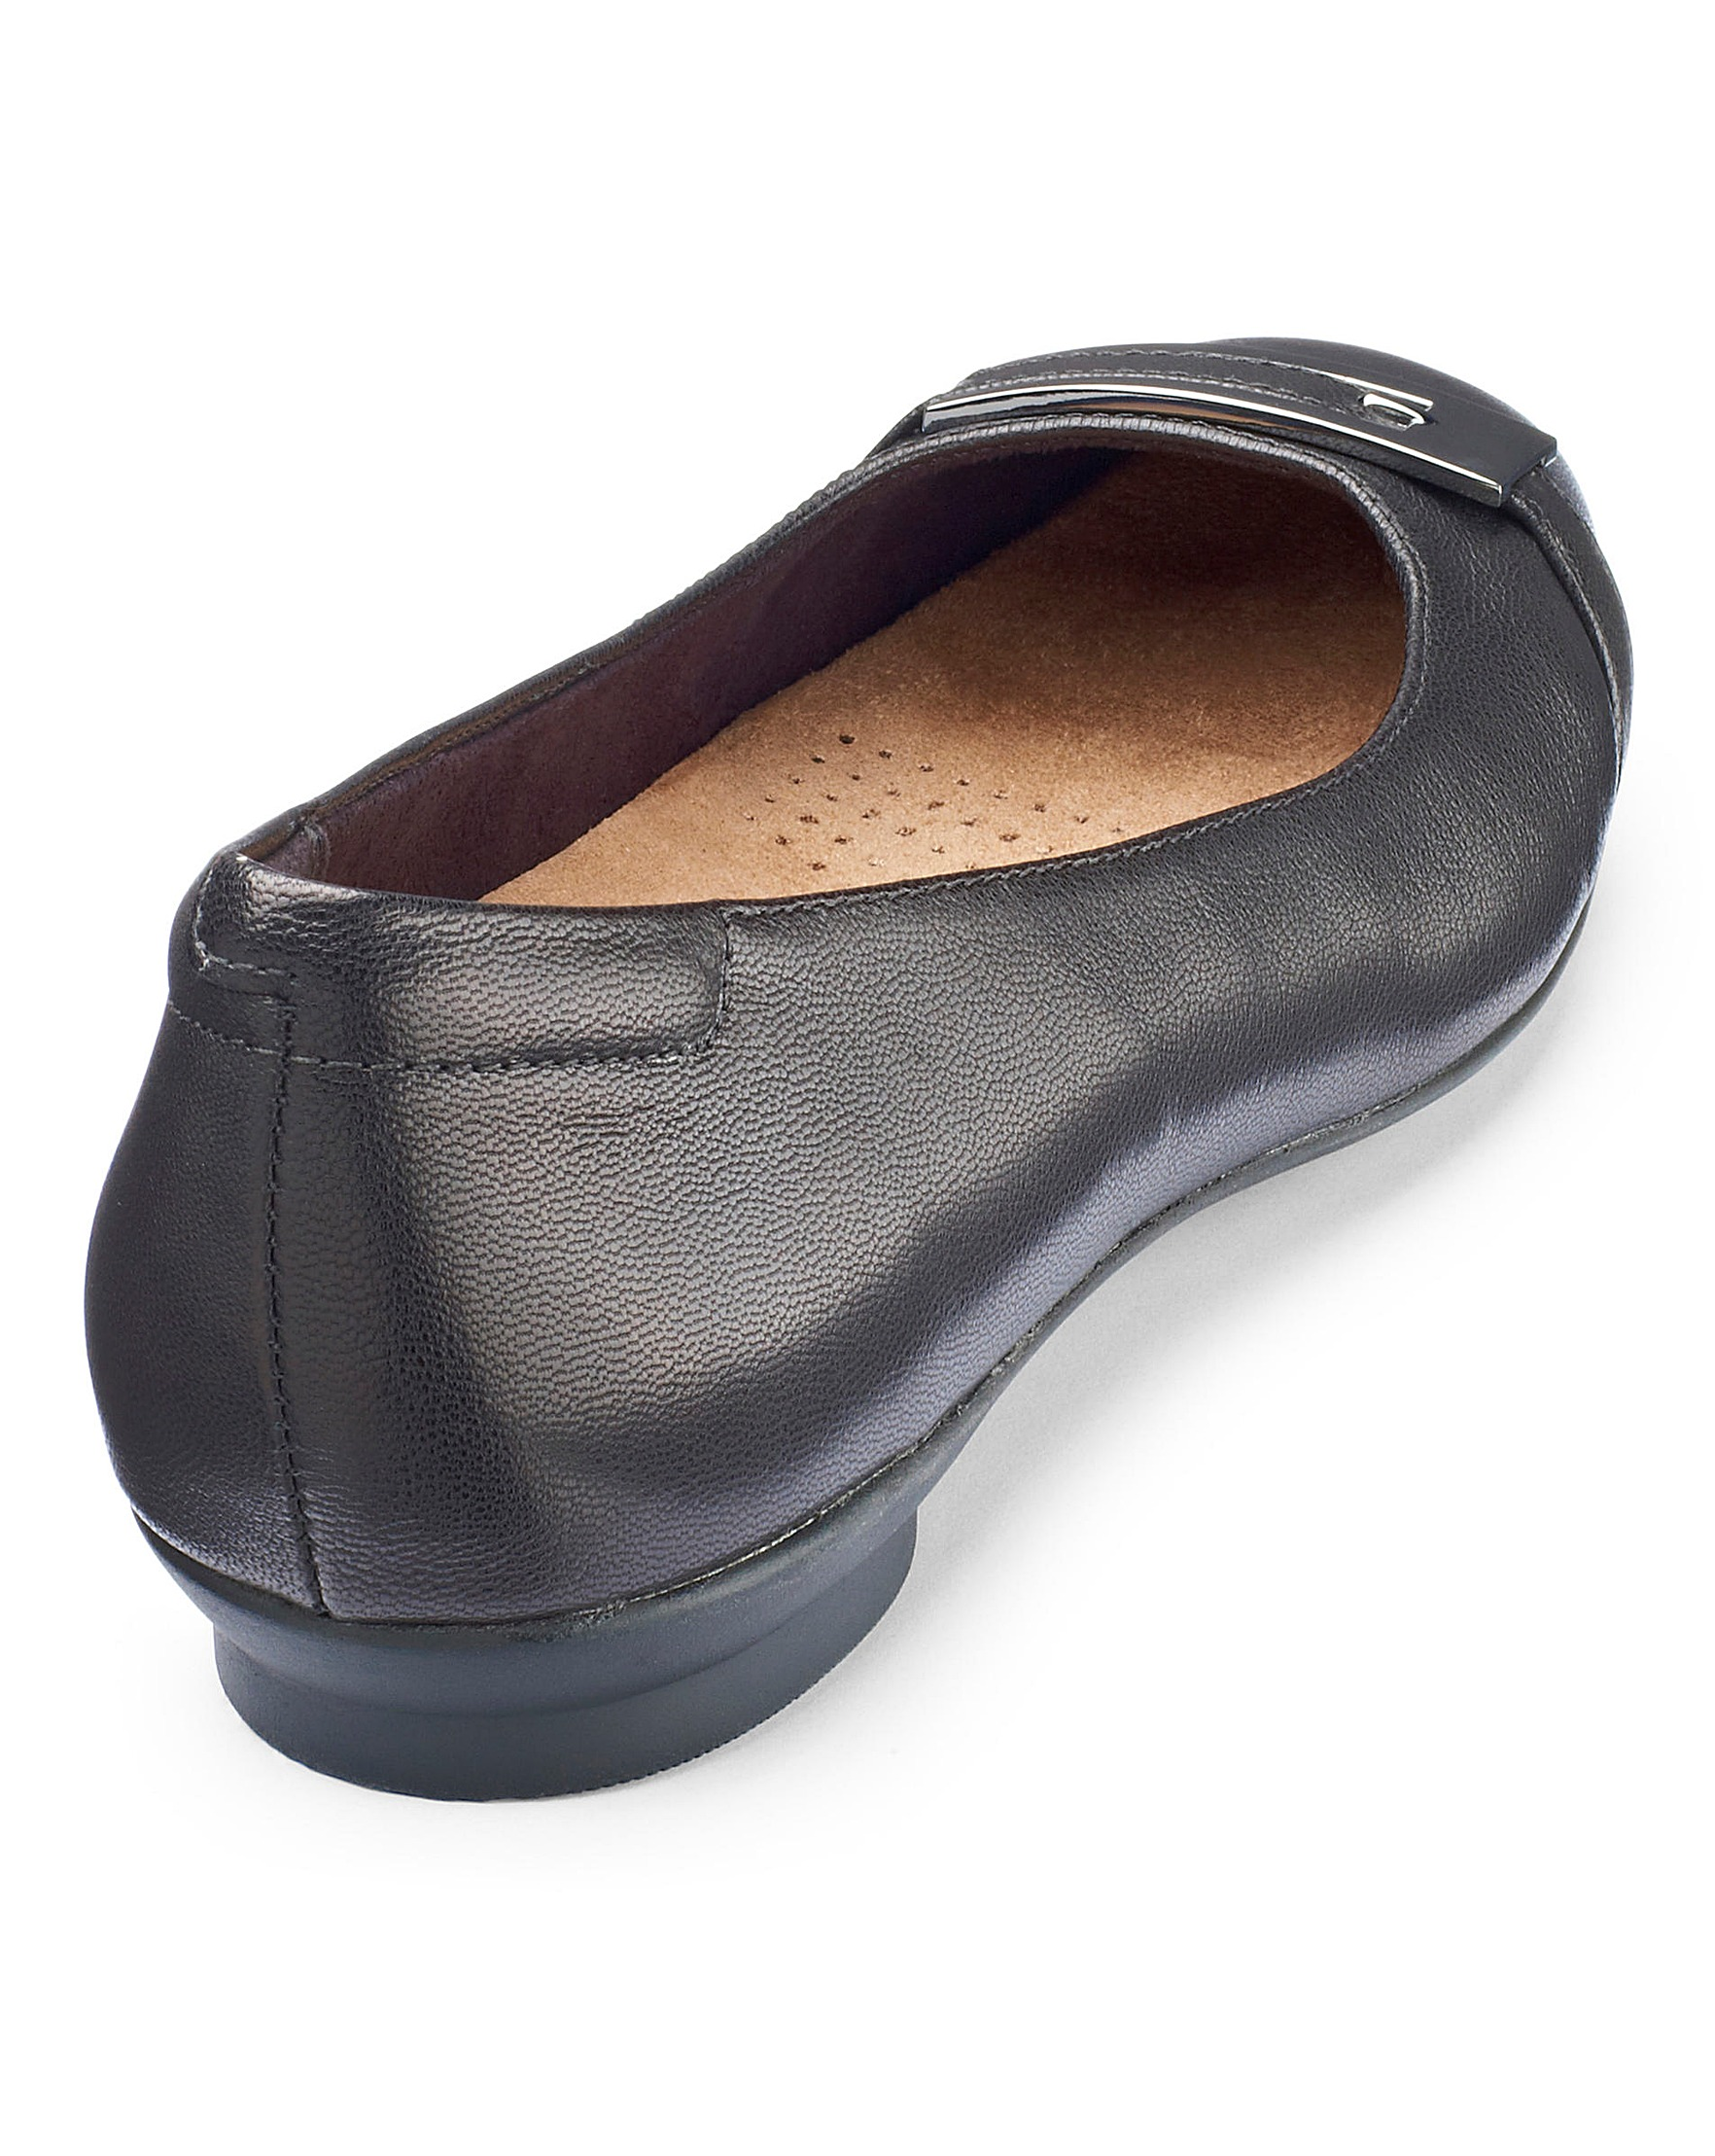 0c9fcb159d0 Clarks Candra Glare Shoes EE Fit